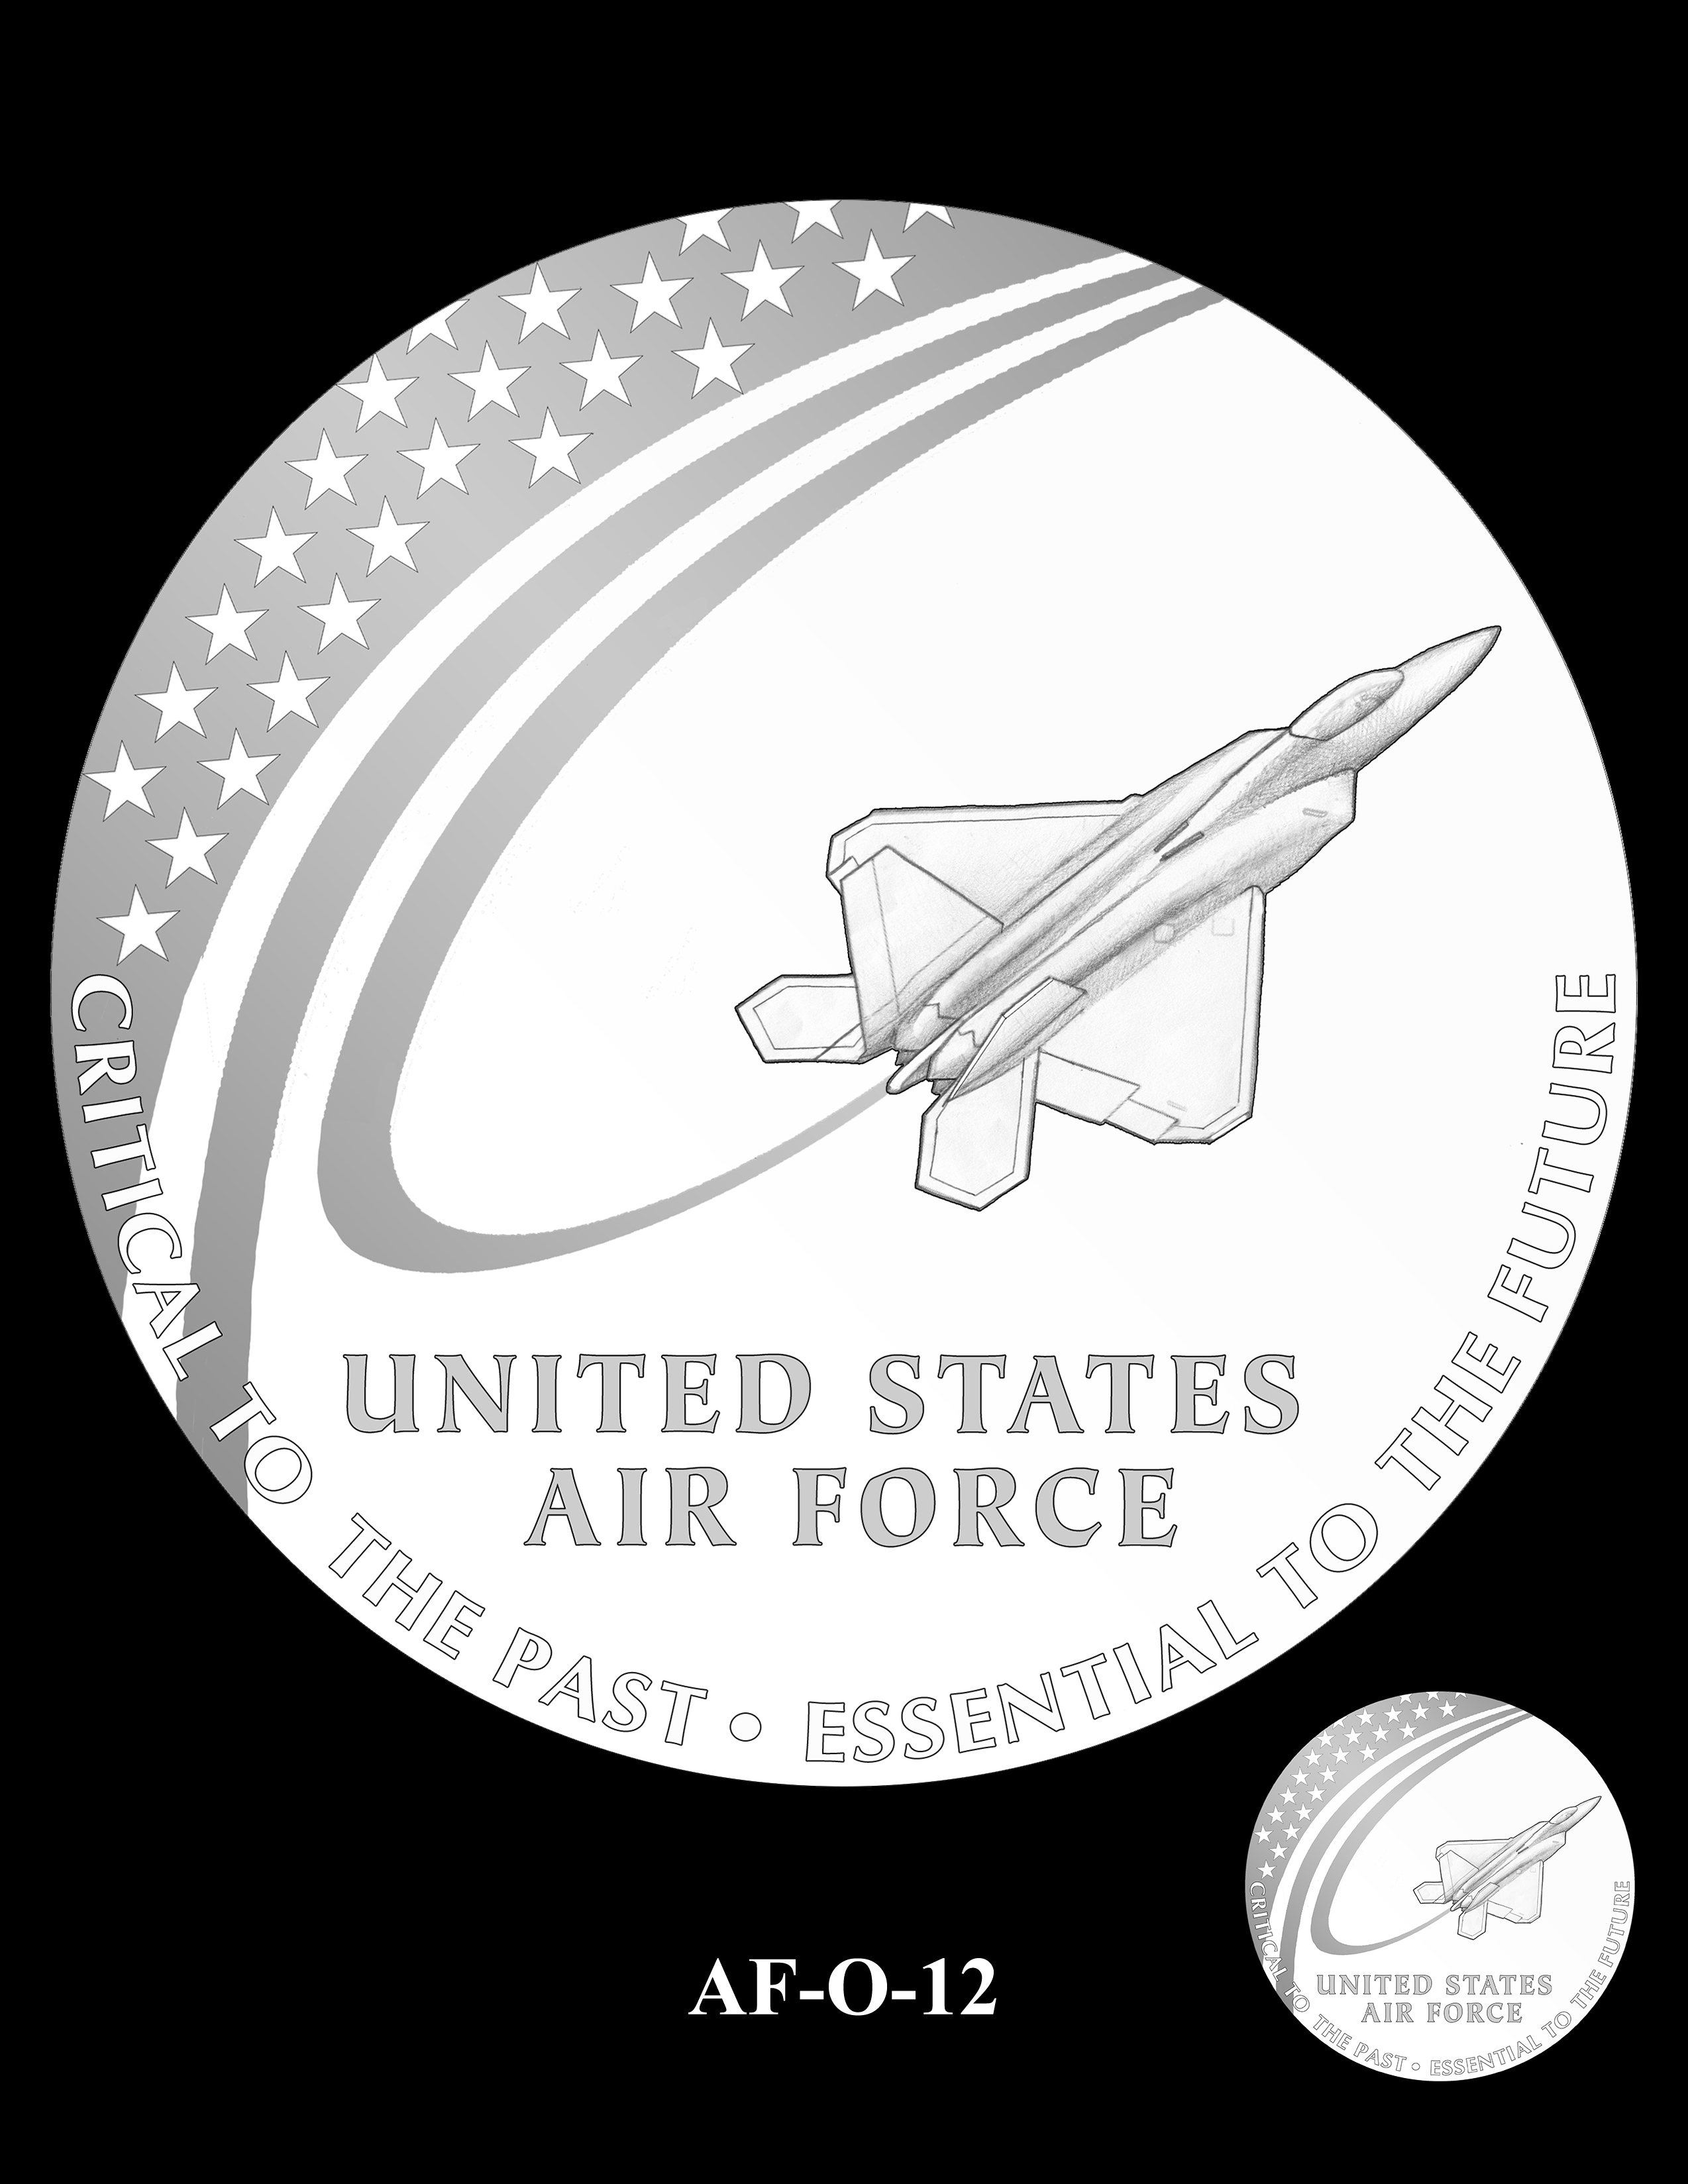 AF-O-12 -- Armed Forces Medal - Air Force